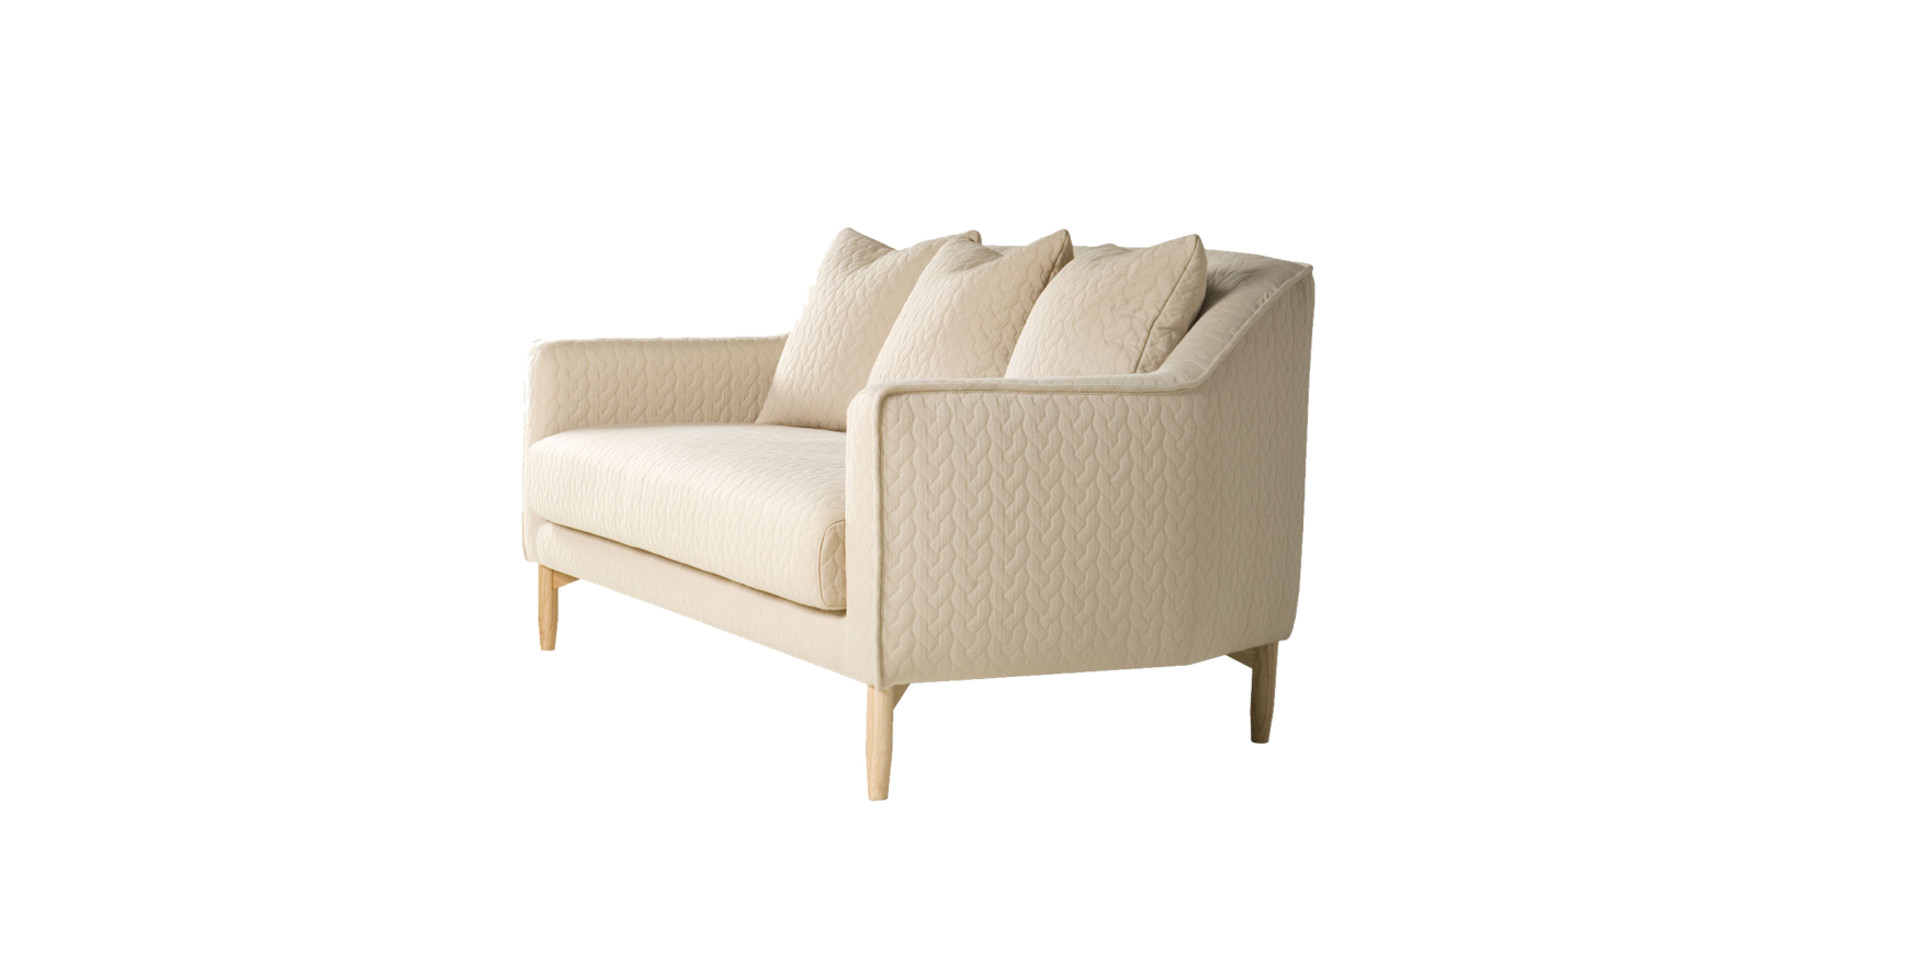 sits-ivy-canape-2seater_zara02_beige_5